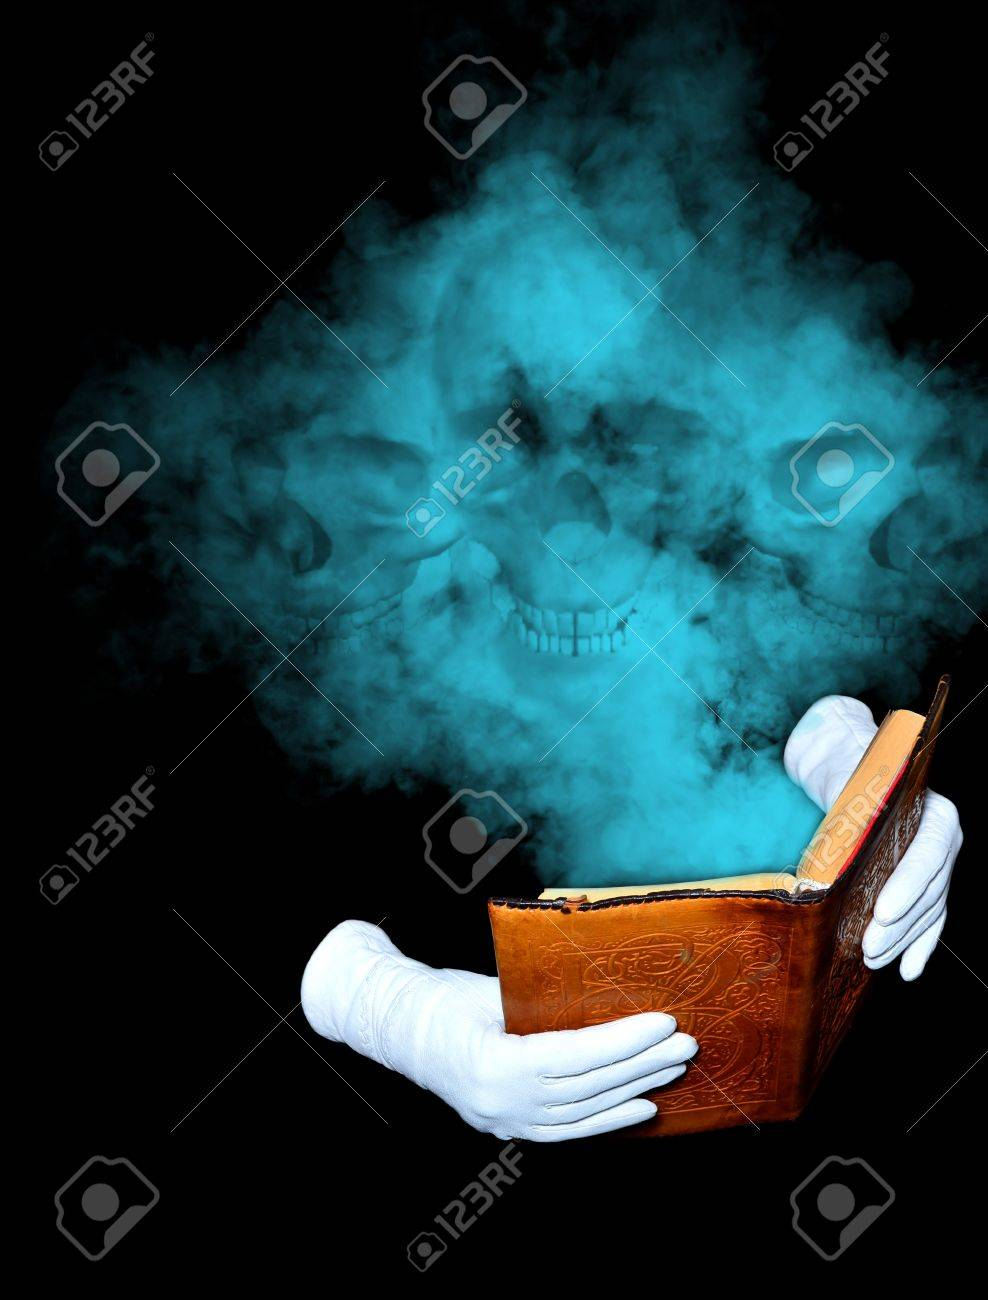 Magic book in leather-bound held by hands in white gloves Stock Photo - 13830770